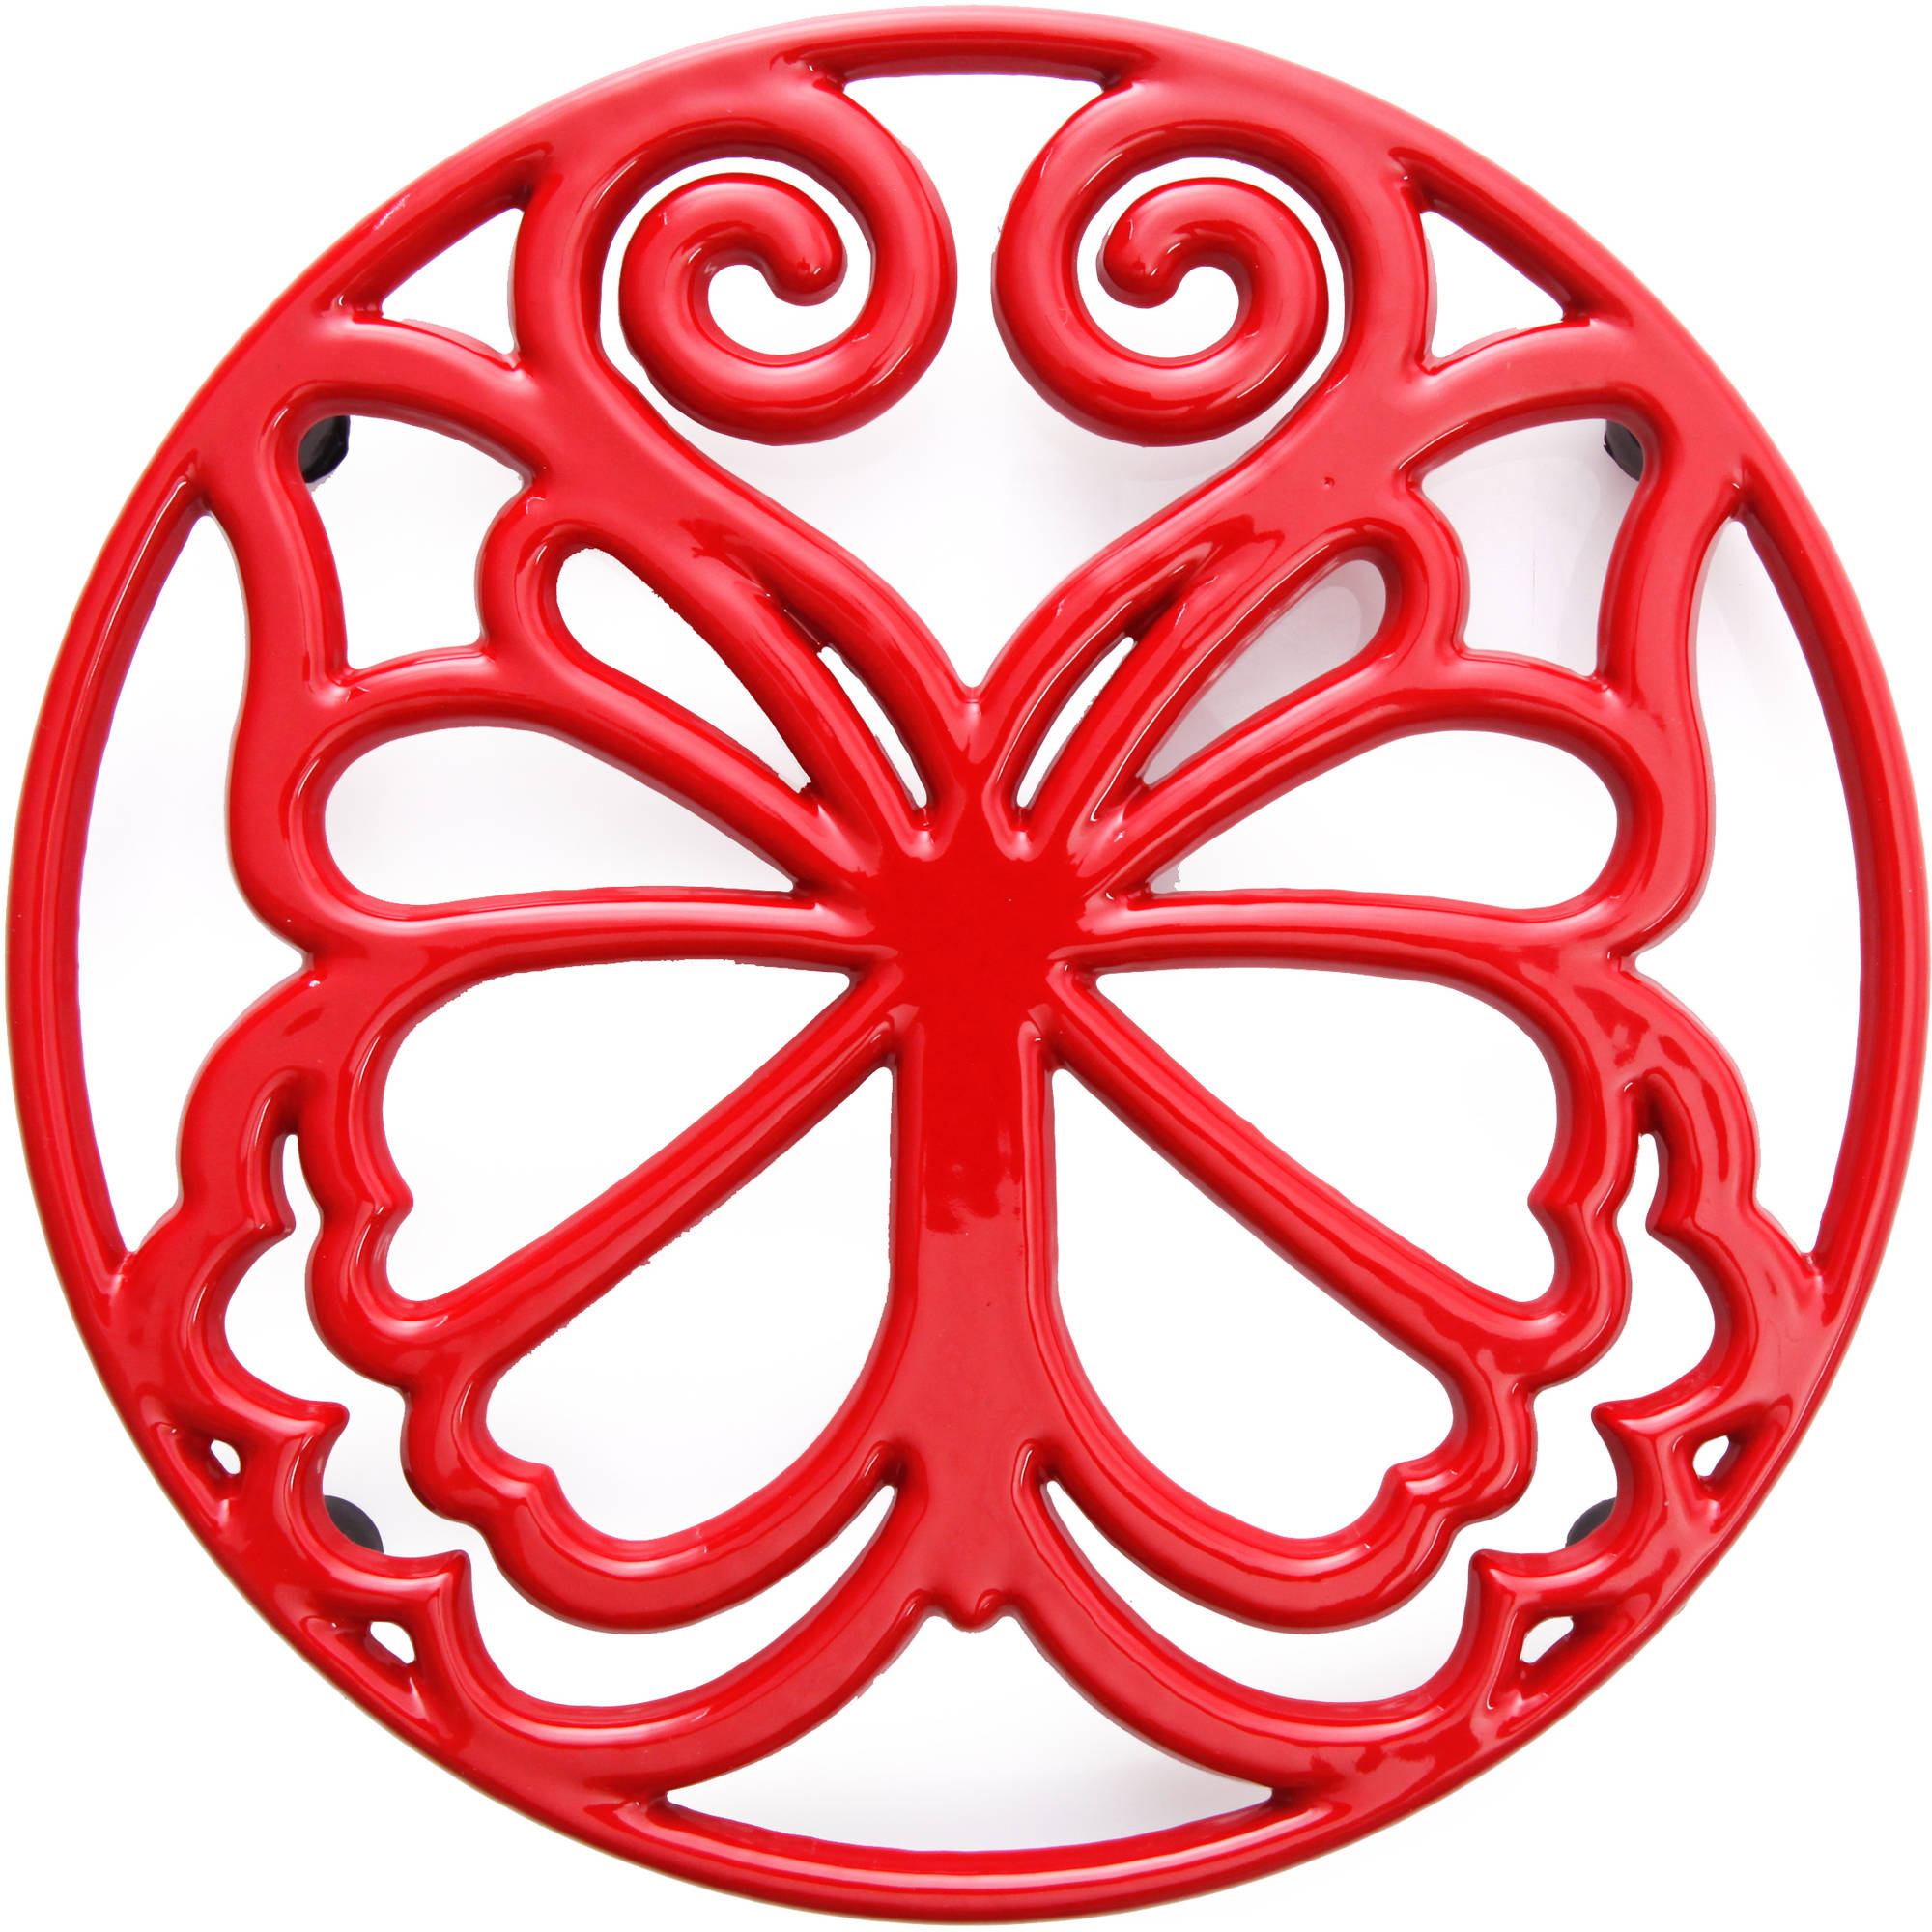 The Pioneer Woman Timeless Beauty 8  Cast Iron Trivet, Red